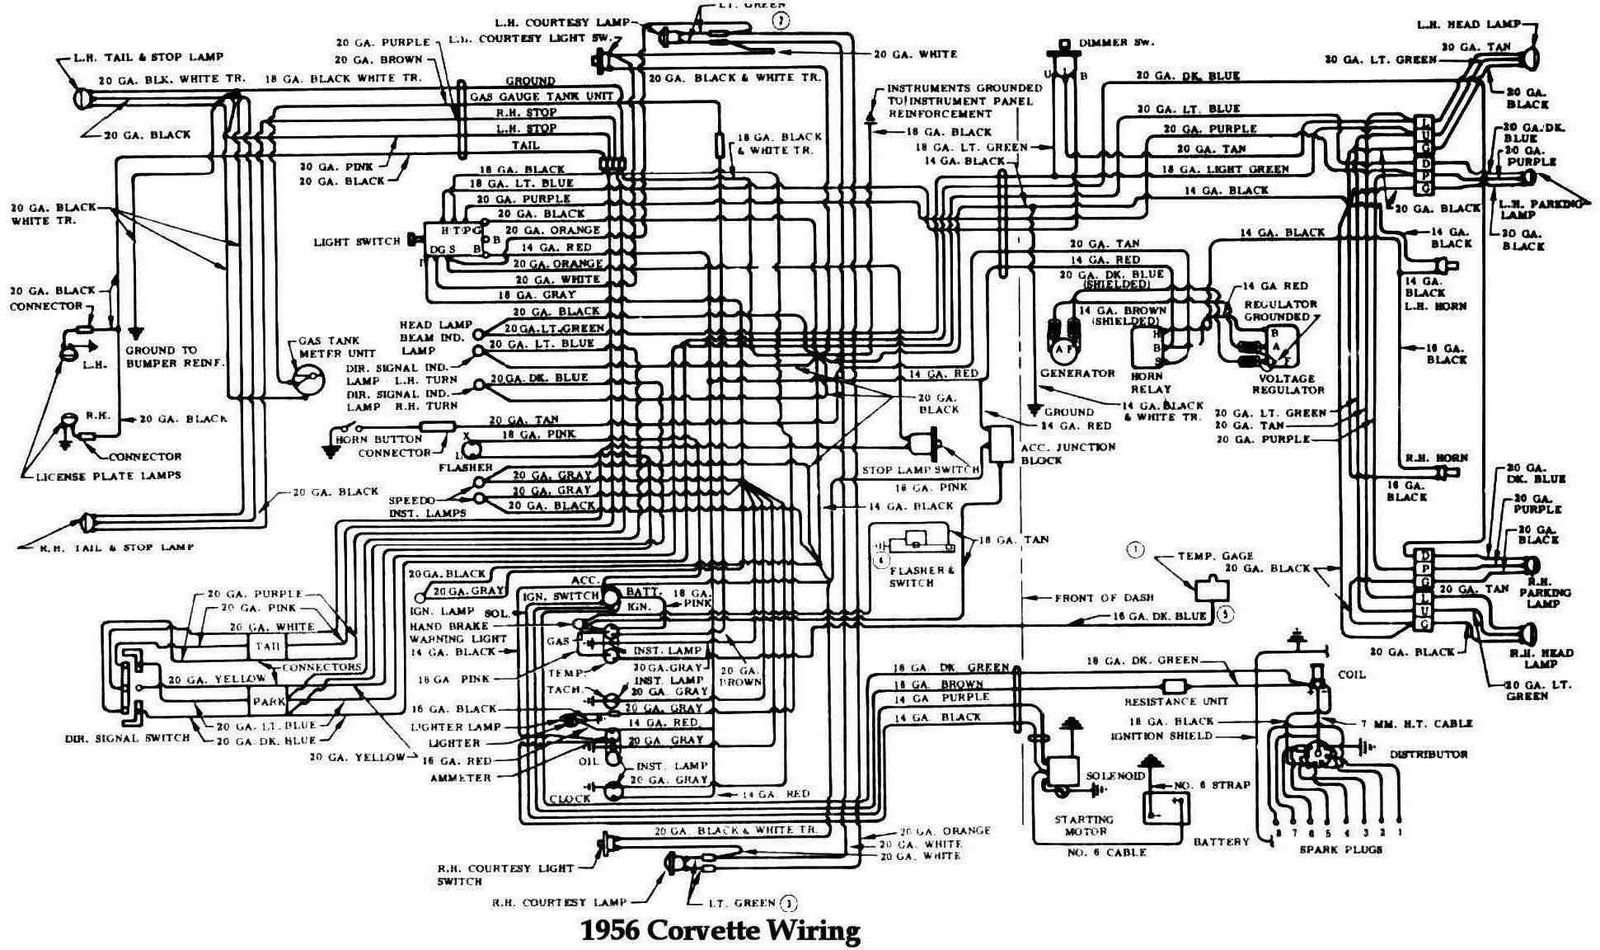 1970 Chevy P10 Wiring Diagram Schematic Diagrams Truck C10 Ignition Electrical 1967